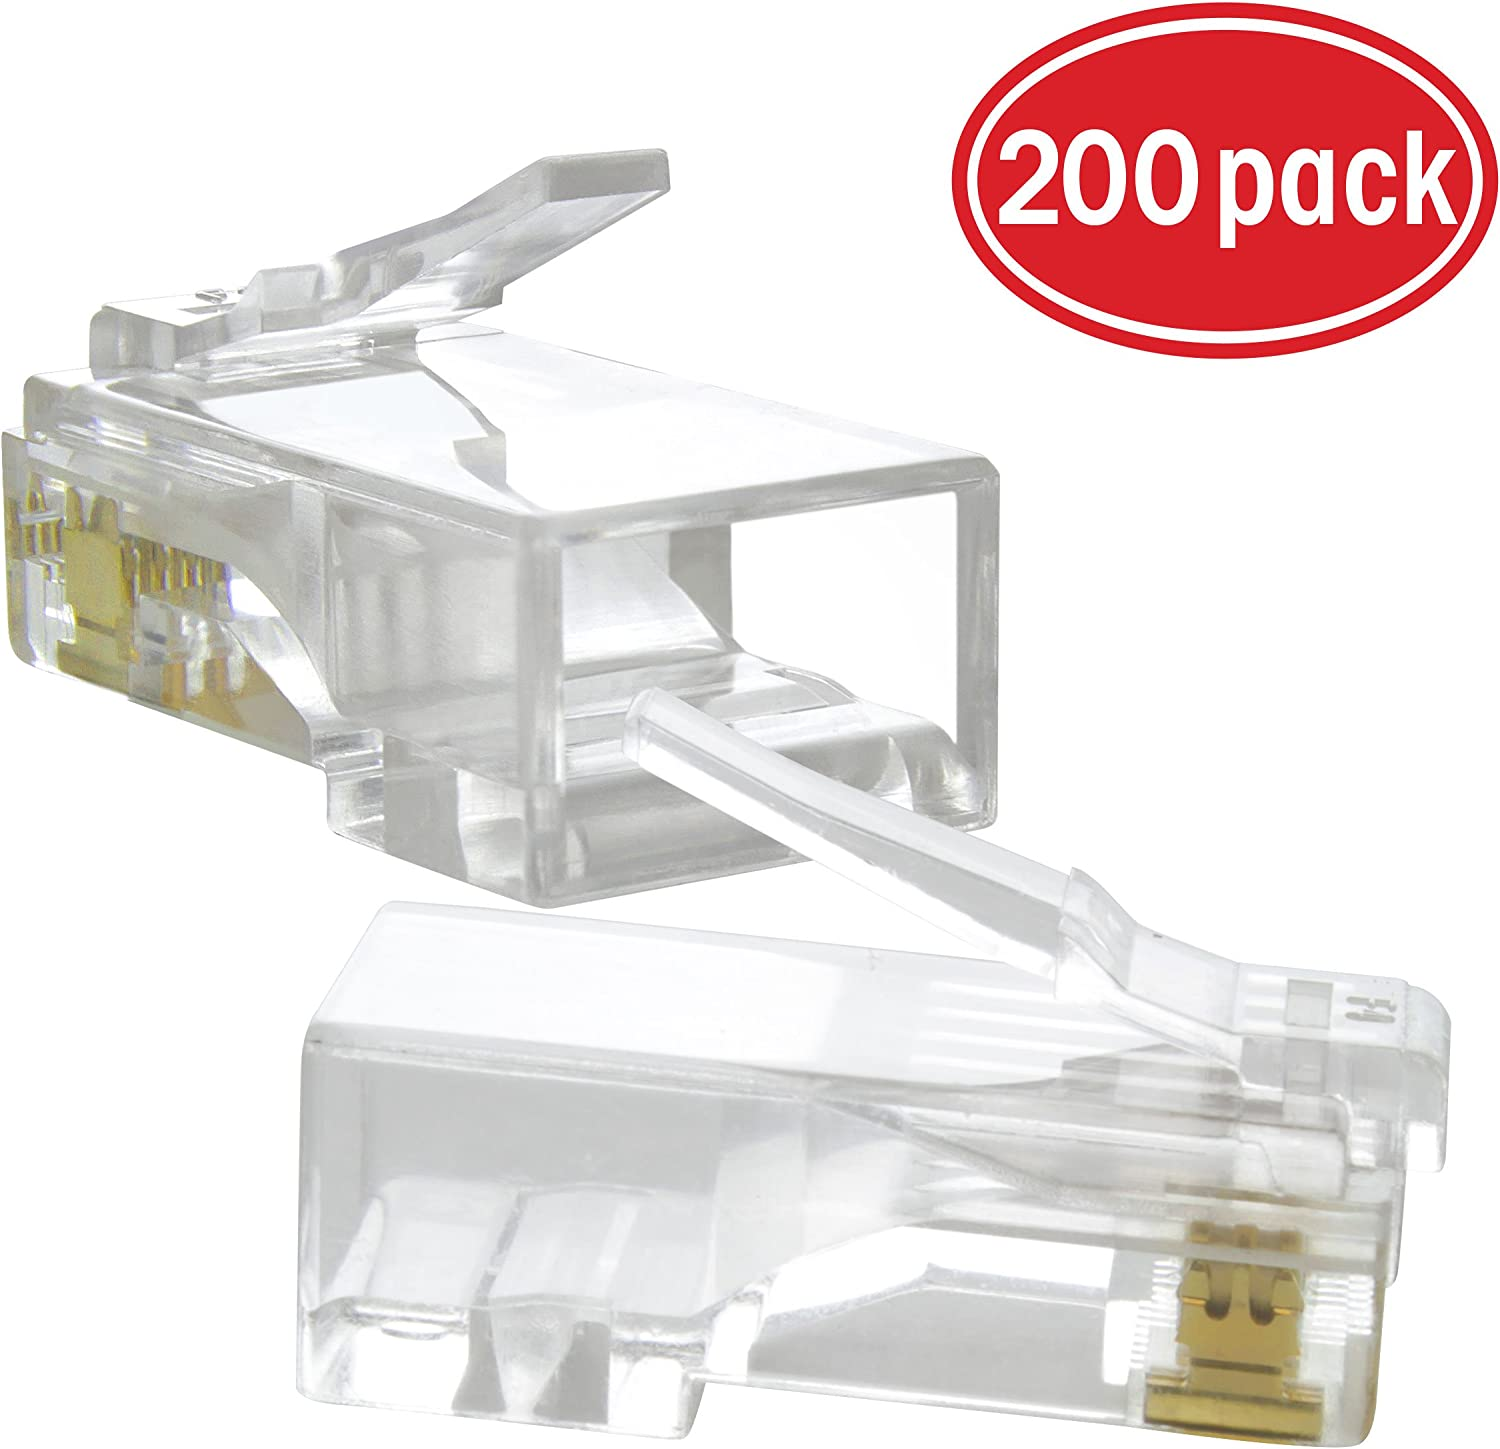 50u Gold-Plated Contacts Crimp Connector GearIT 100-Pack Cat5e RJ45 Modular Plug for Stranded UTP Cat 5e Network Cable